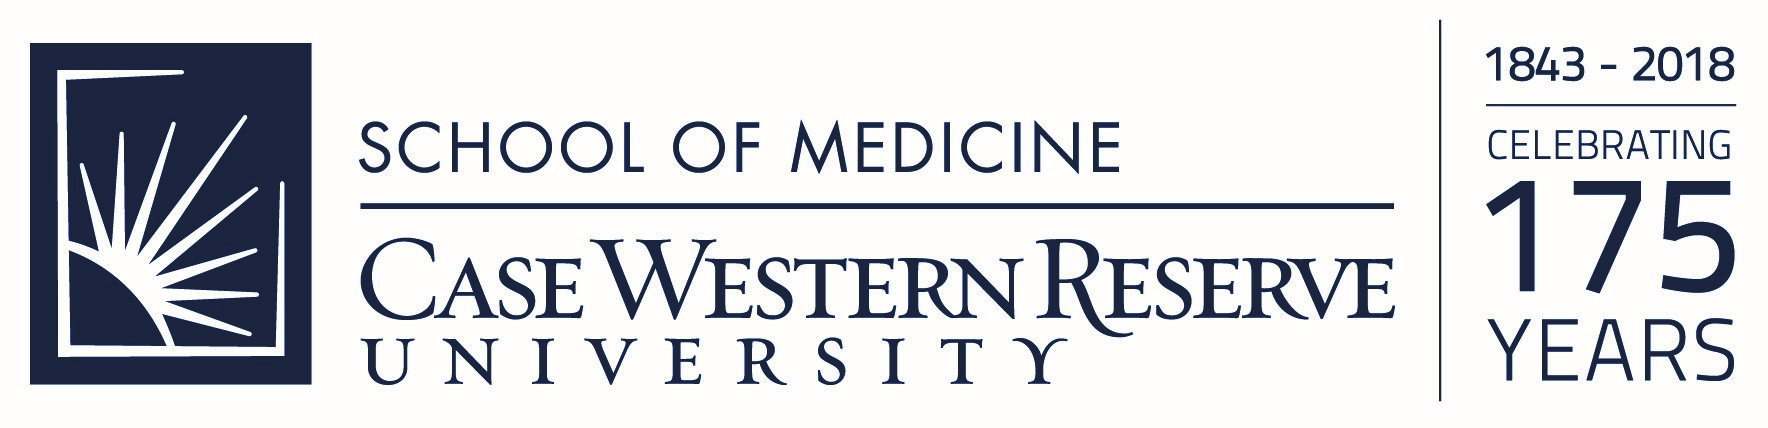 Case Western Reserve University School of Medicine 175